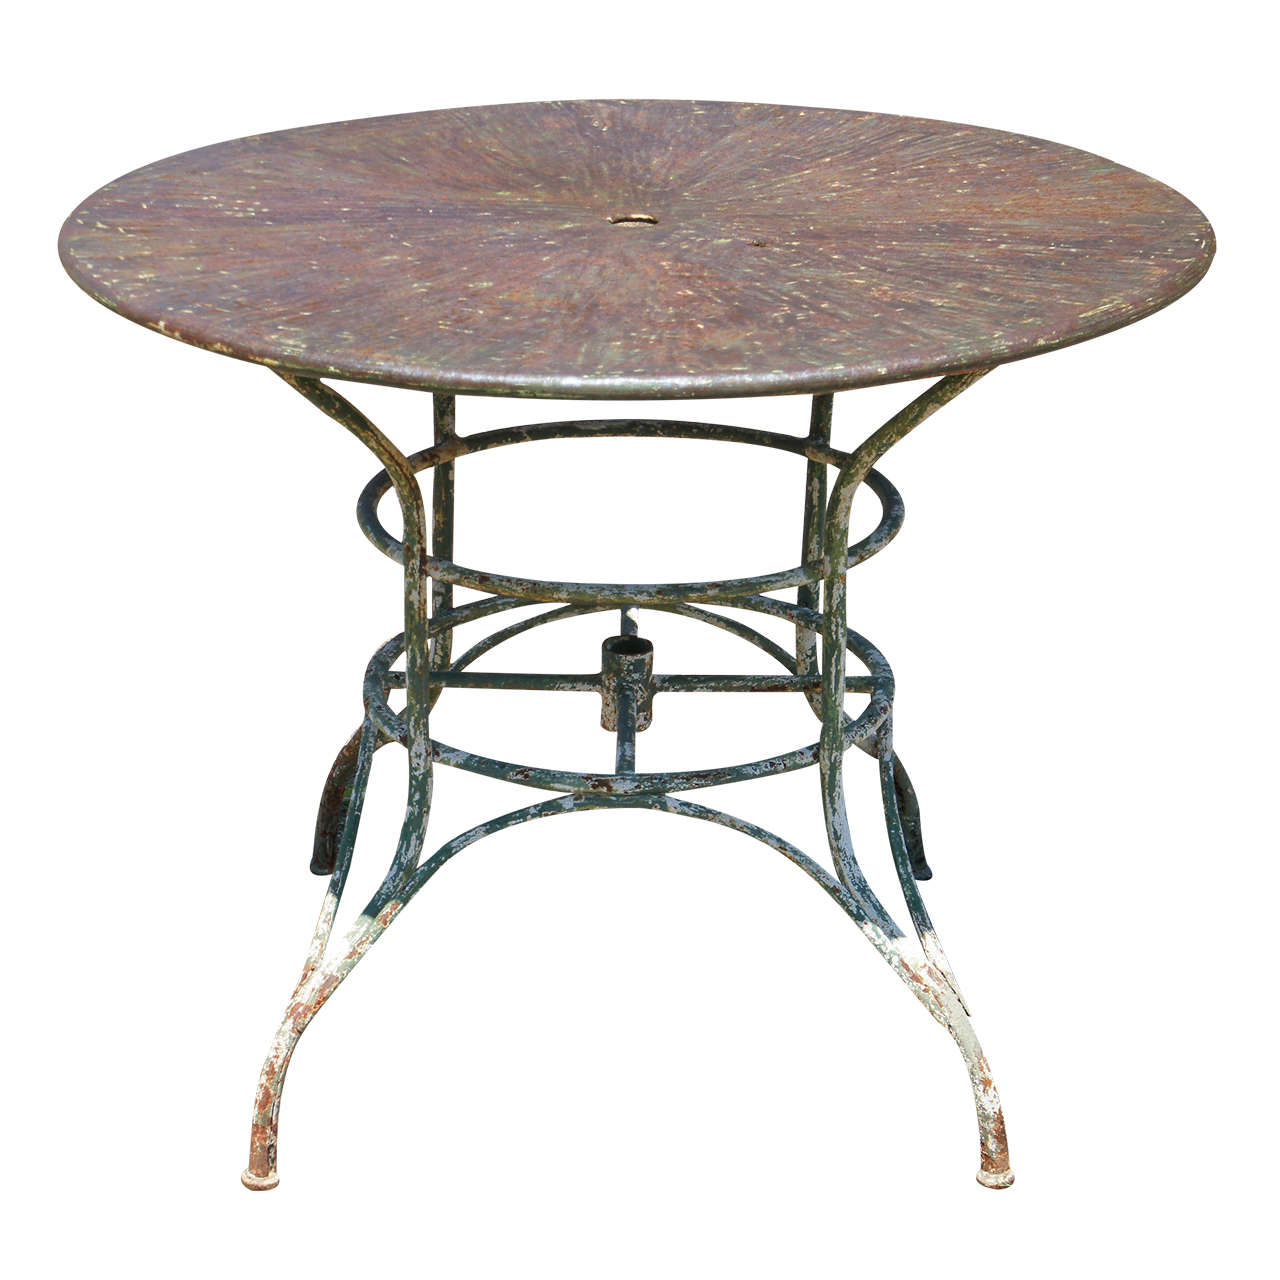 Umbrella round metal garden table at 1stdibs - Metal garden table and chairs ...